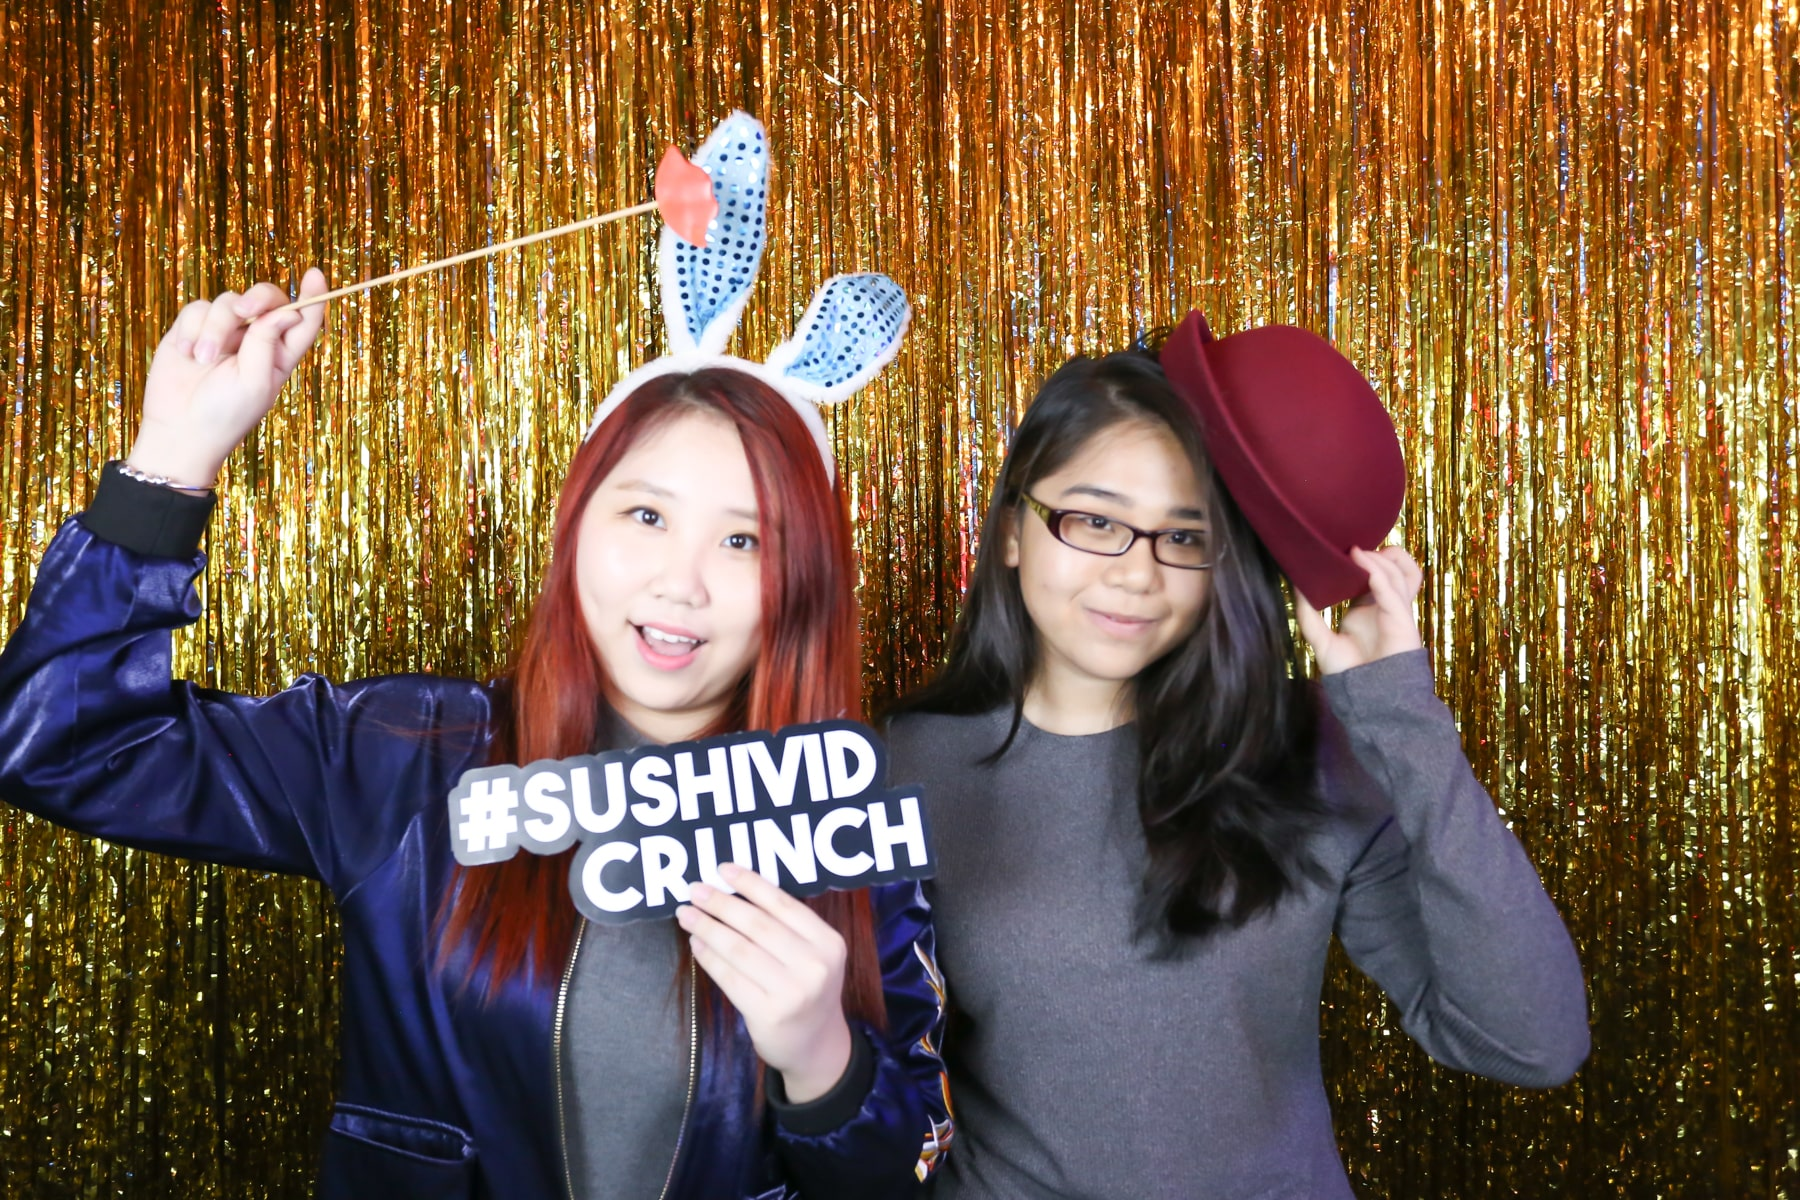 Sushivid+crunch+tagbooth+88